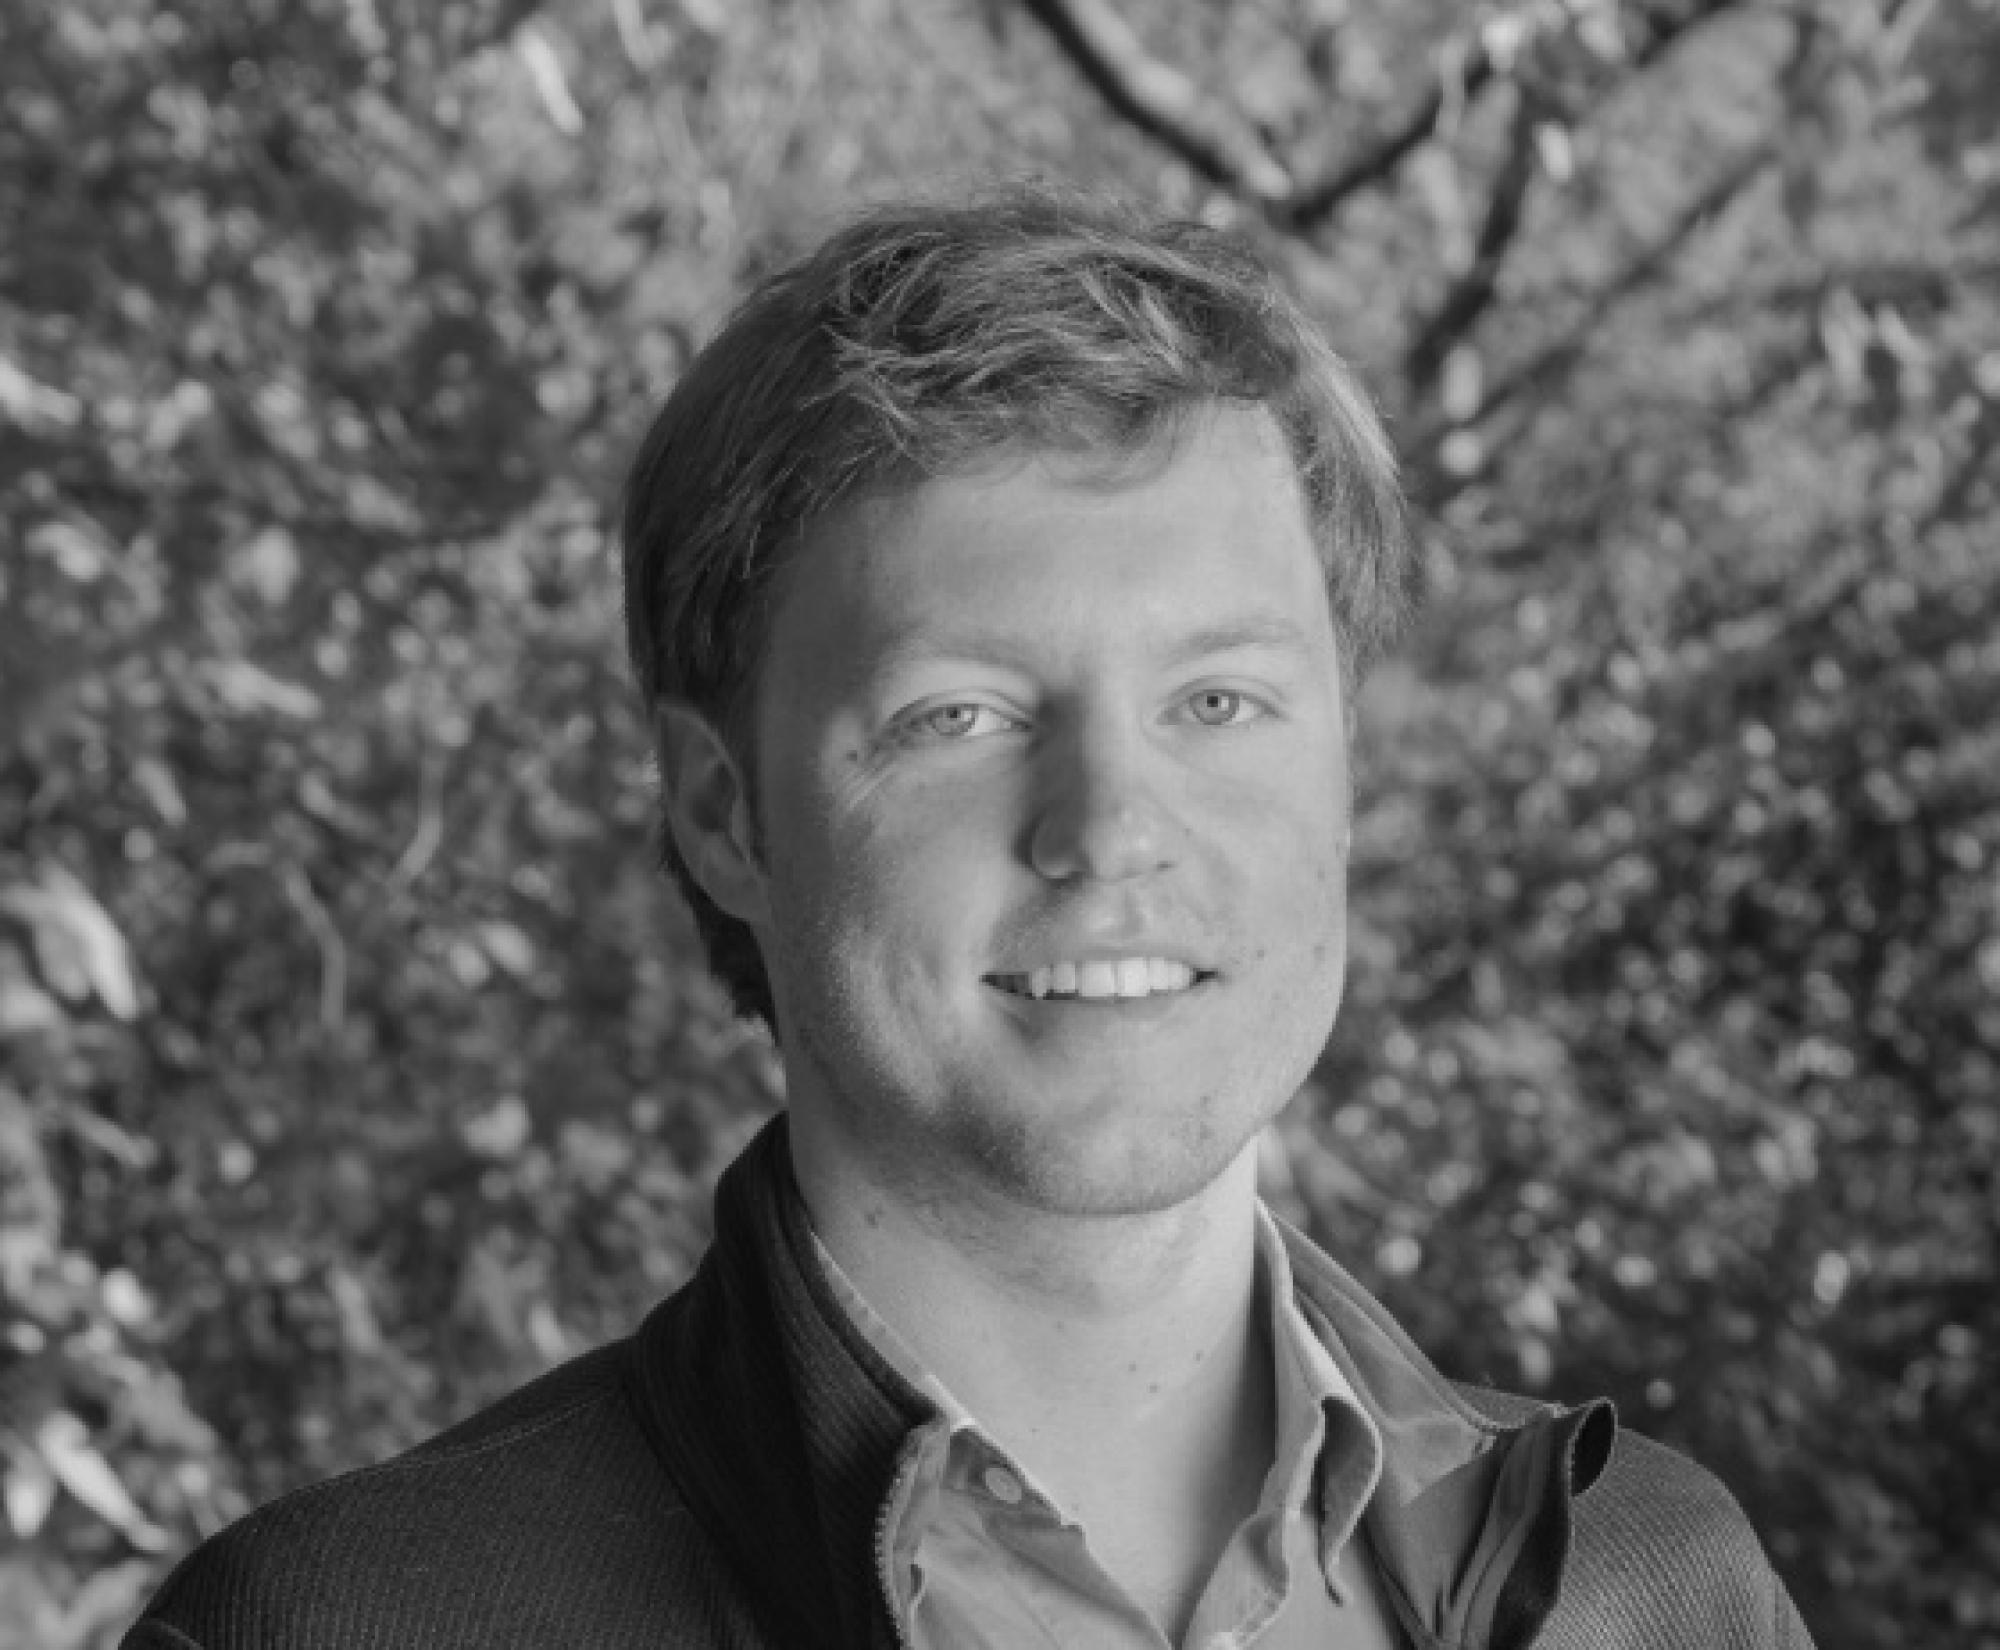 UA researcher Philip A. Stoker is an expert in urban water demand and the integration of land-use planning with water management. He focuses on how land cover, built environmental characteristics, social condition and demographics interact to influence wa